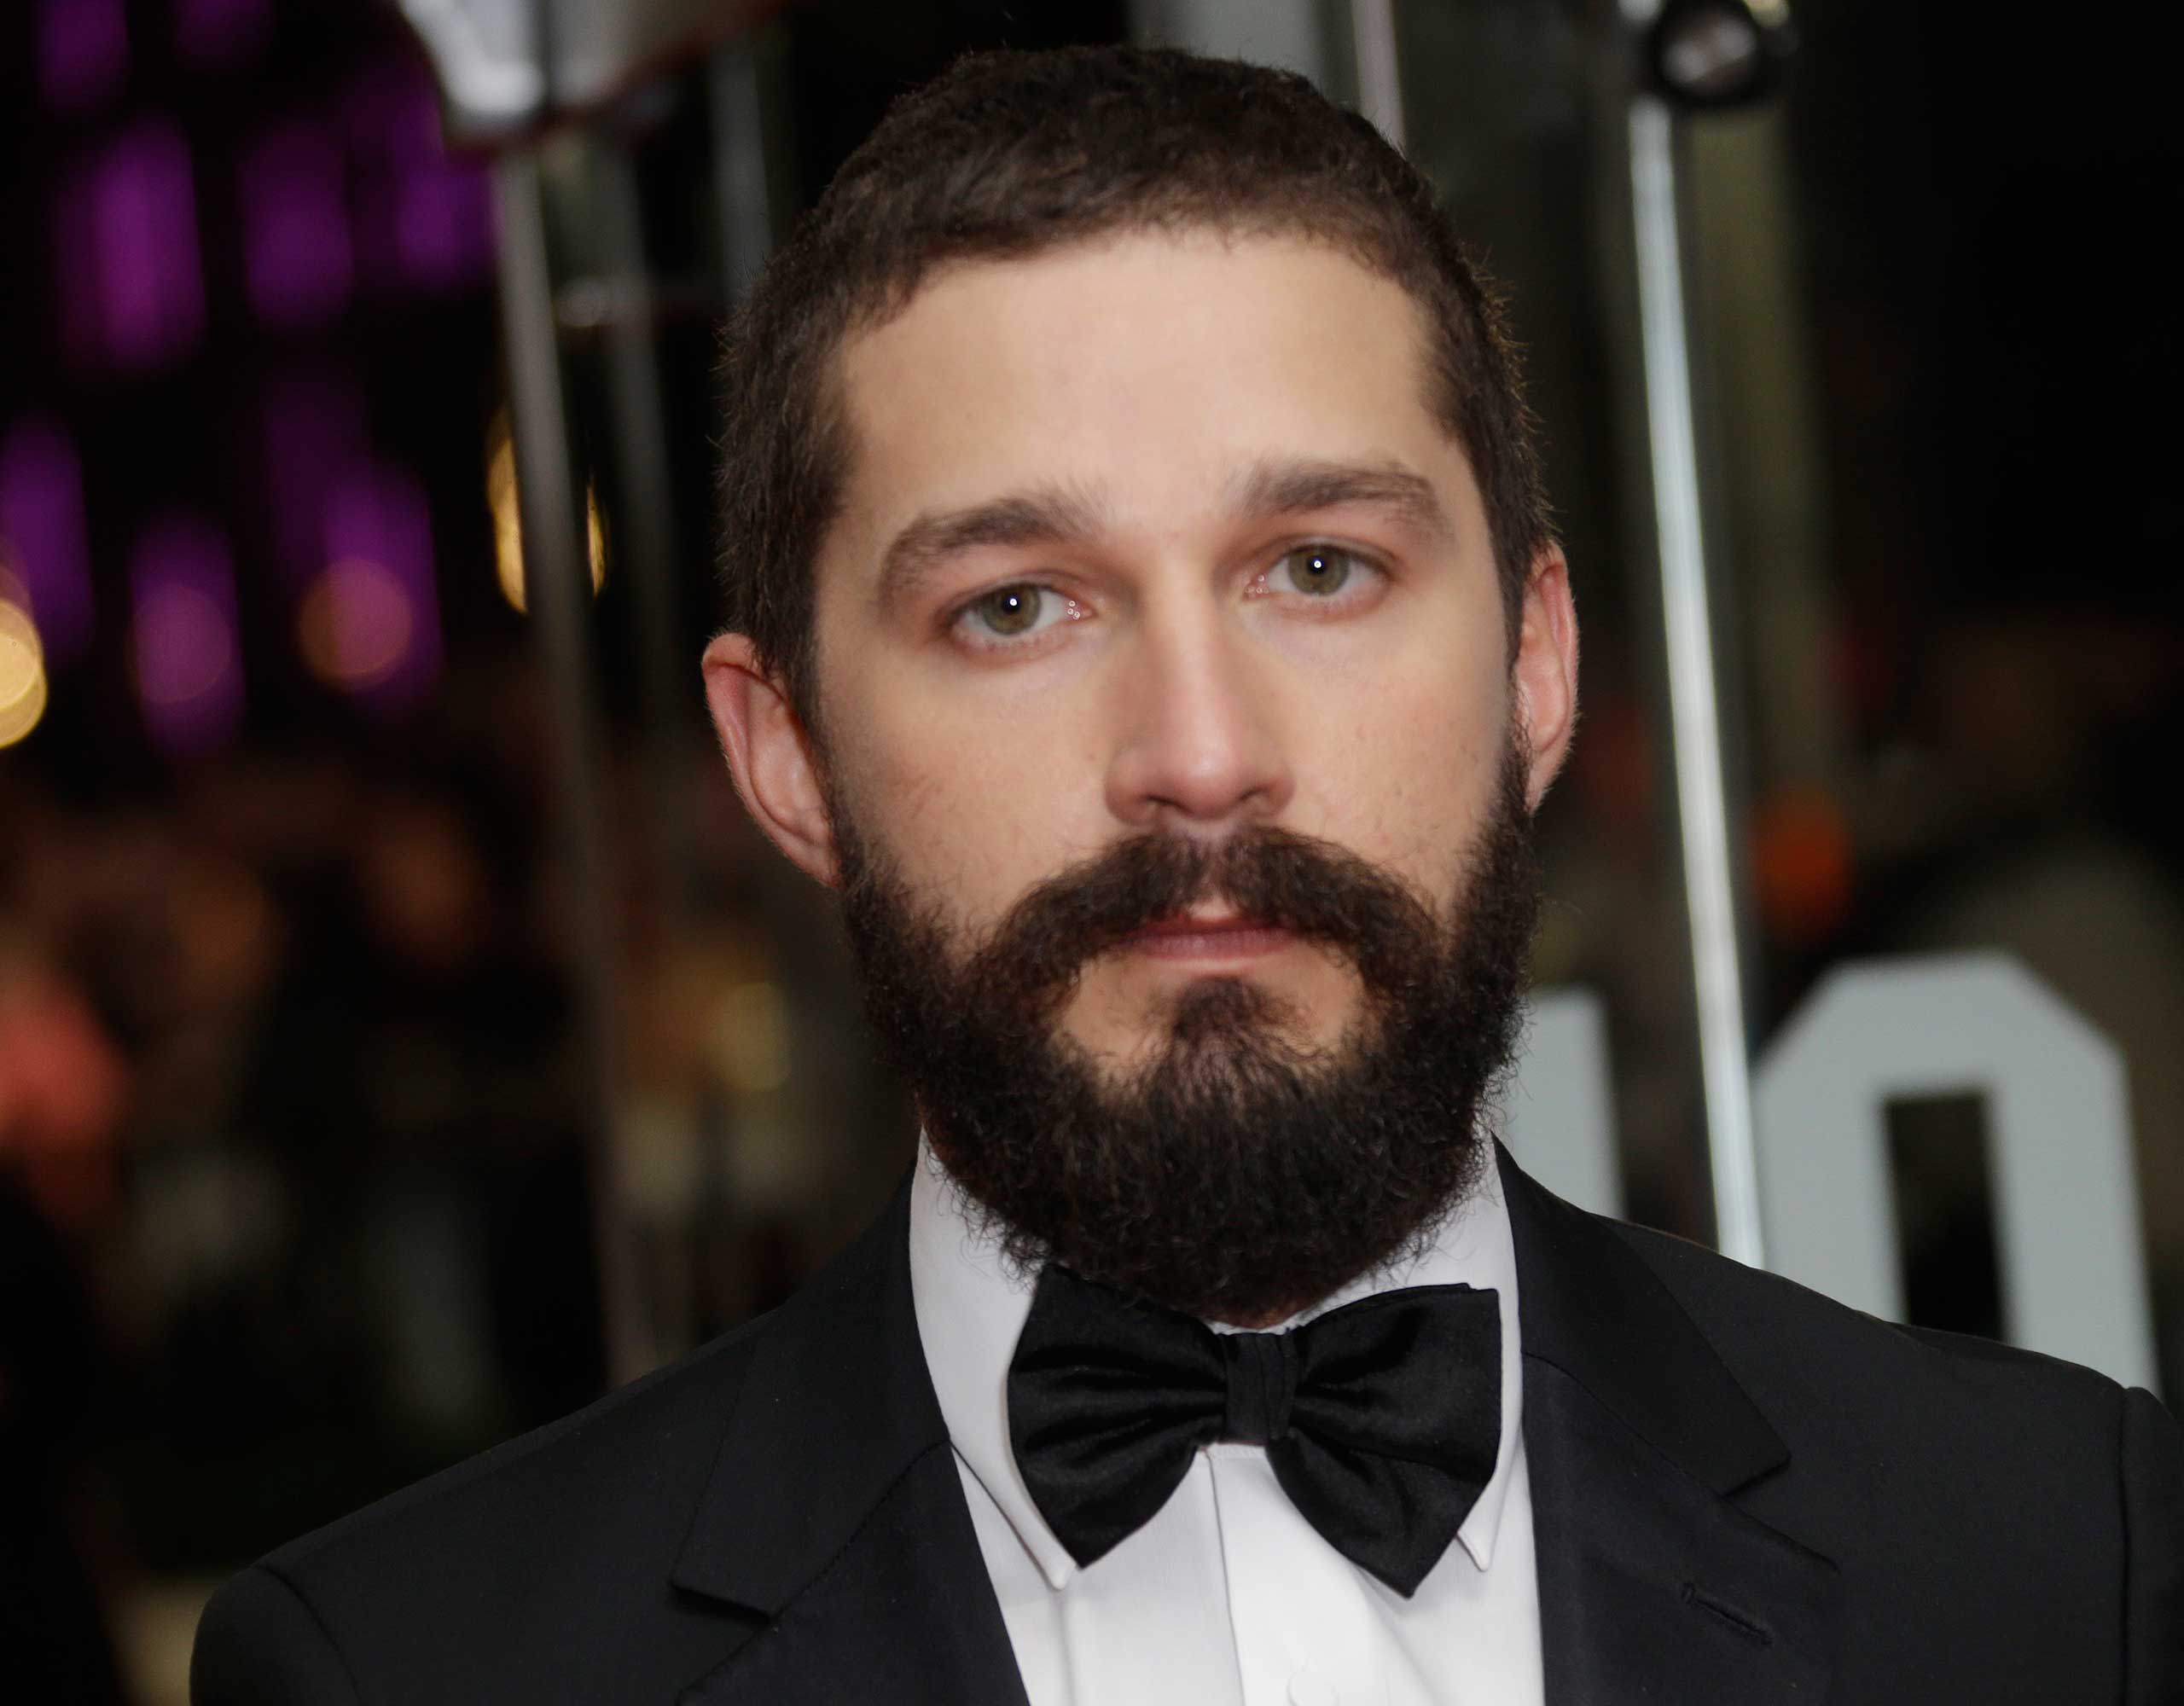 Shia LaBeouf poses for photographers at a film premiere in London, Oct. 19, 2014.